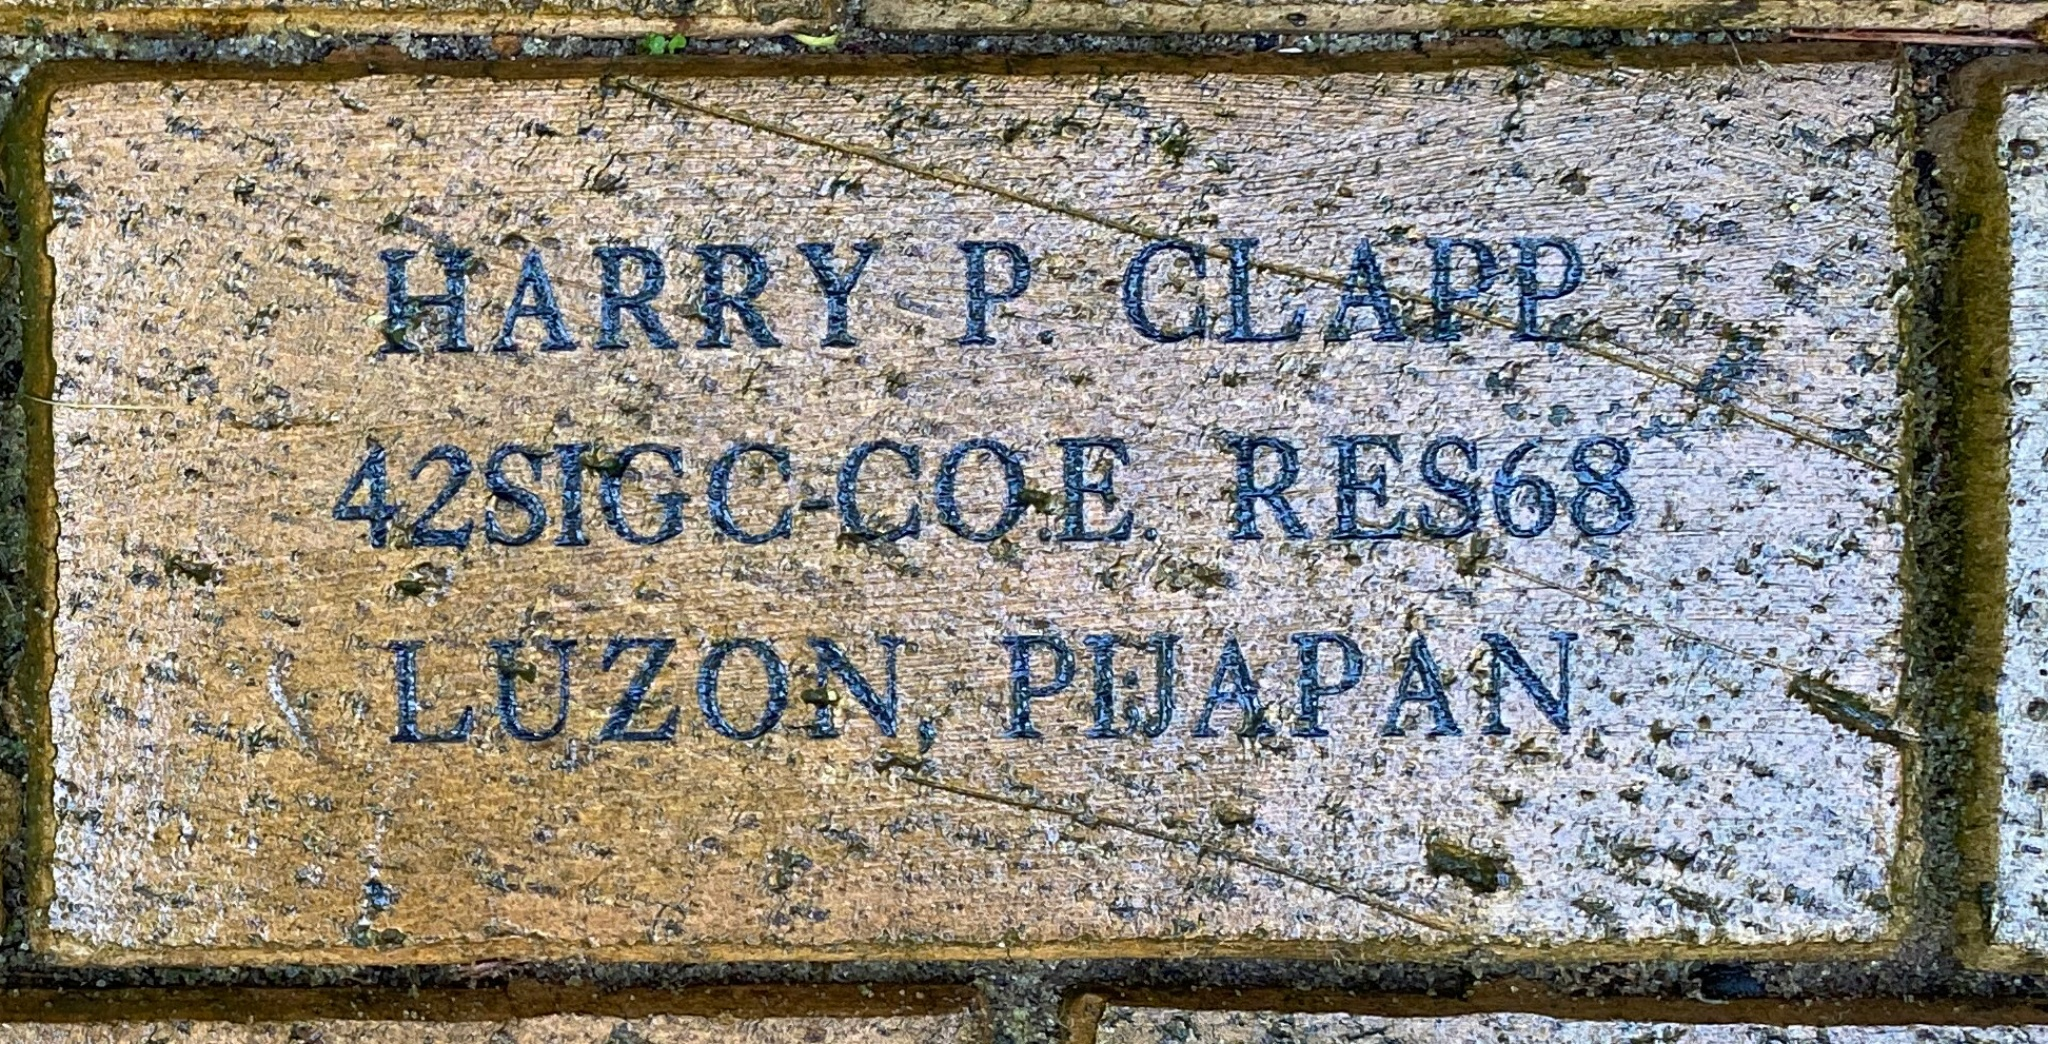 HARRY P. CLAPP 42SIGC-COE. RES 68 LUZON, PIJAPAN